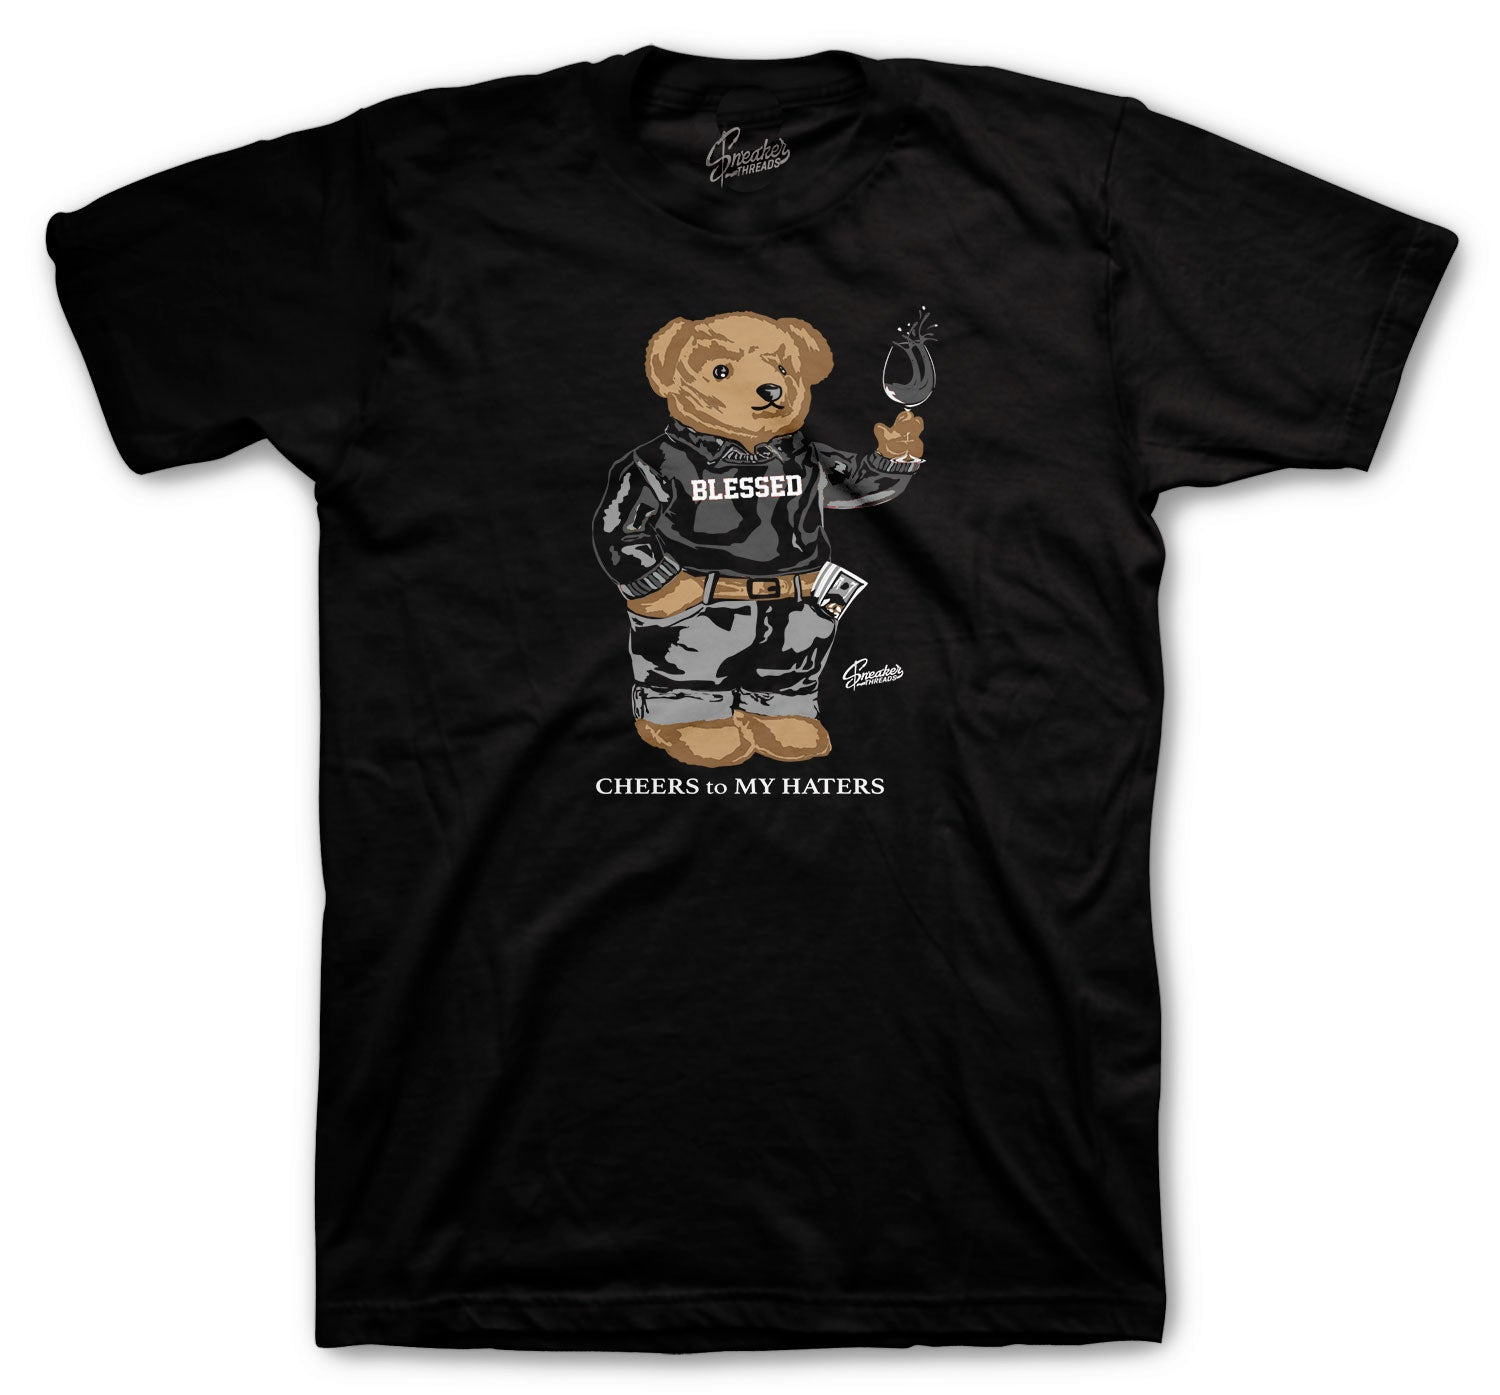 Jordan 4 Black Cat Cheers Bear Shirt